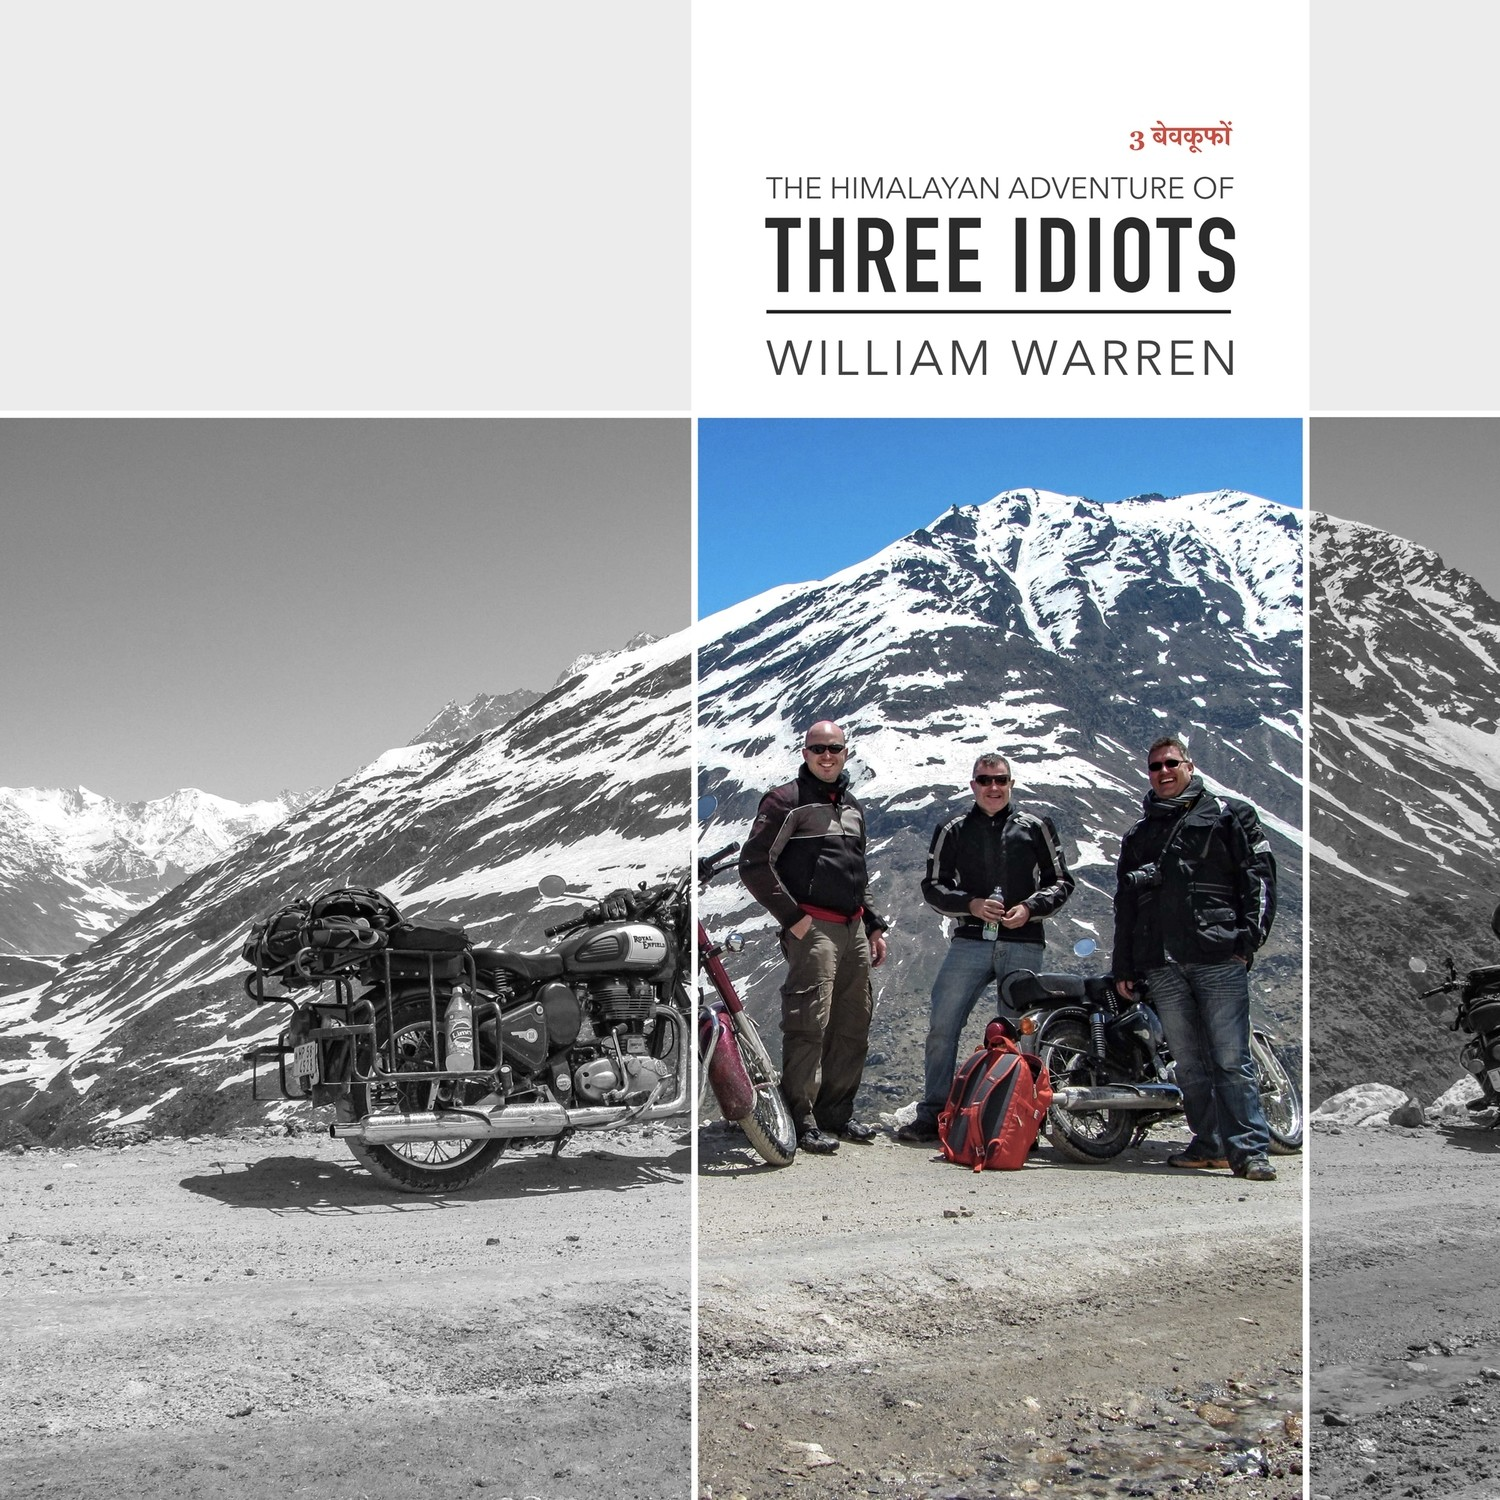 The Himalayan Adventure of Three Idiots - 210mm x 210mm High-quality Paperback (0.5kg)